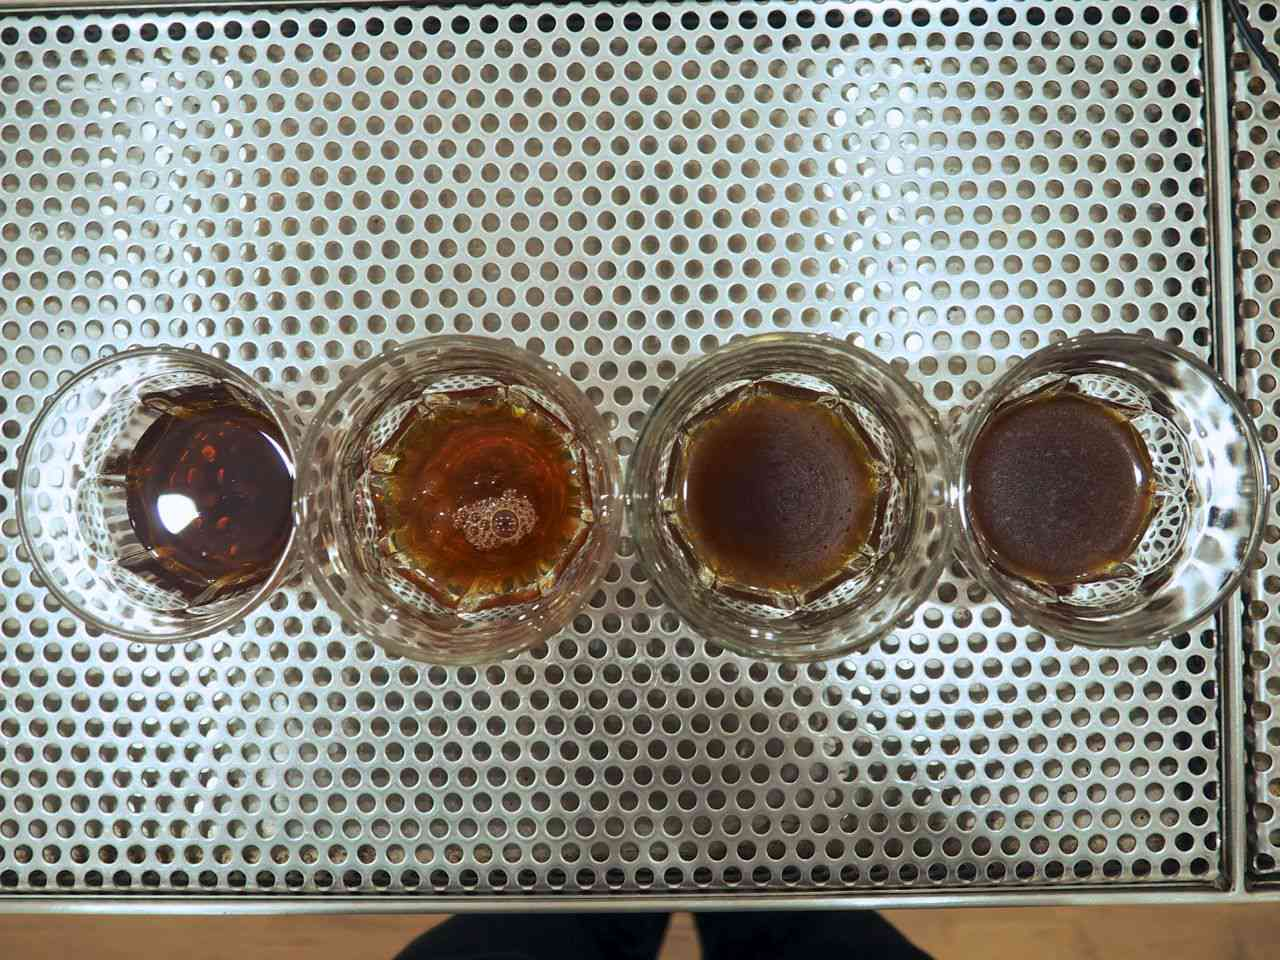 Iced coffee prepared in four different ways, all served in small glasses.